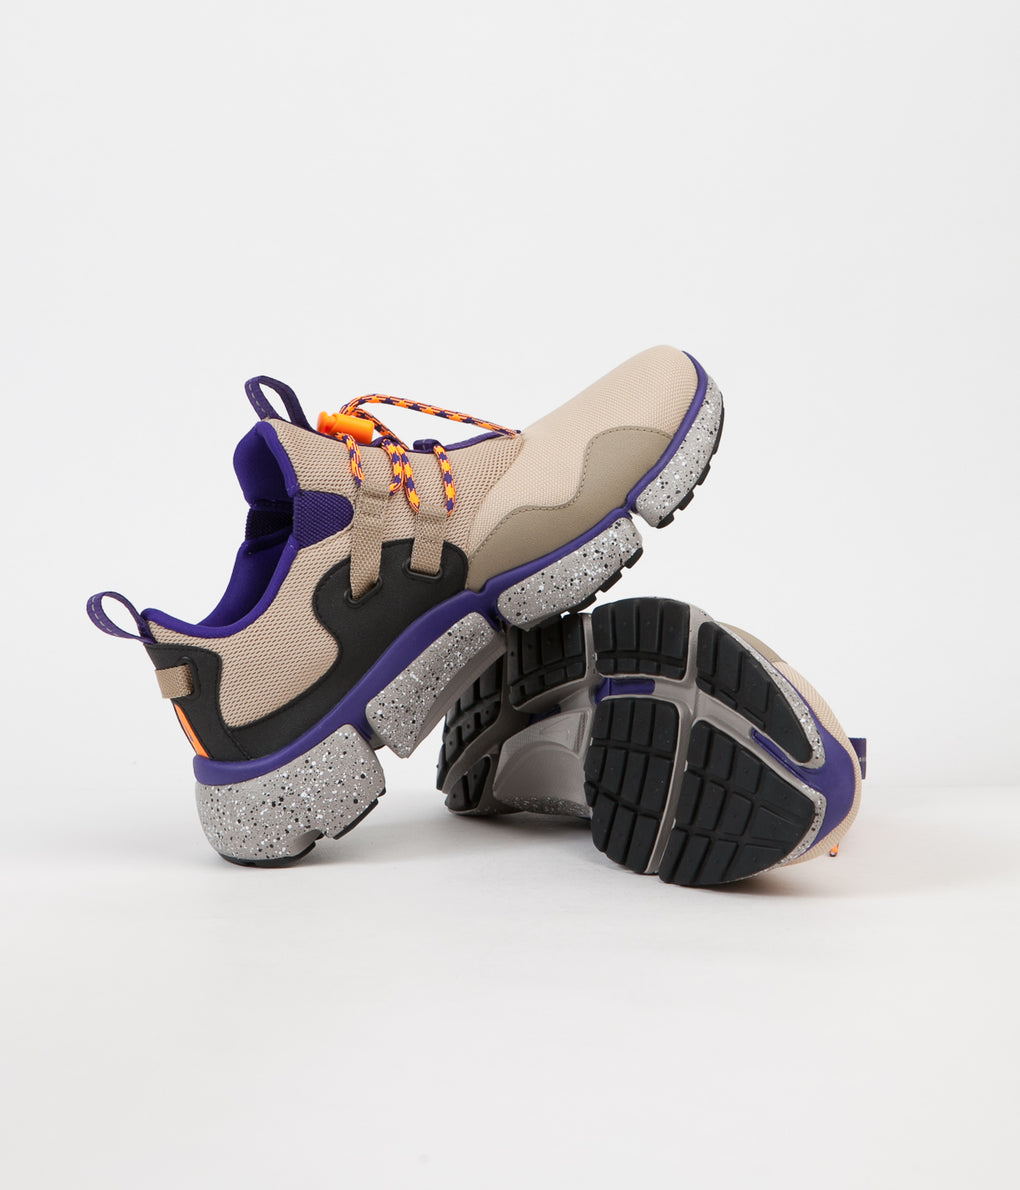 Nike Pocketknife DM Shoes - Linen / Khaki / Court Purple /  Black